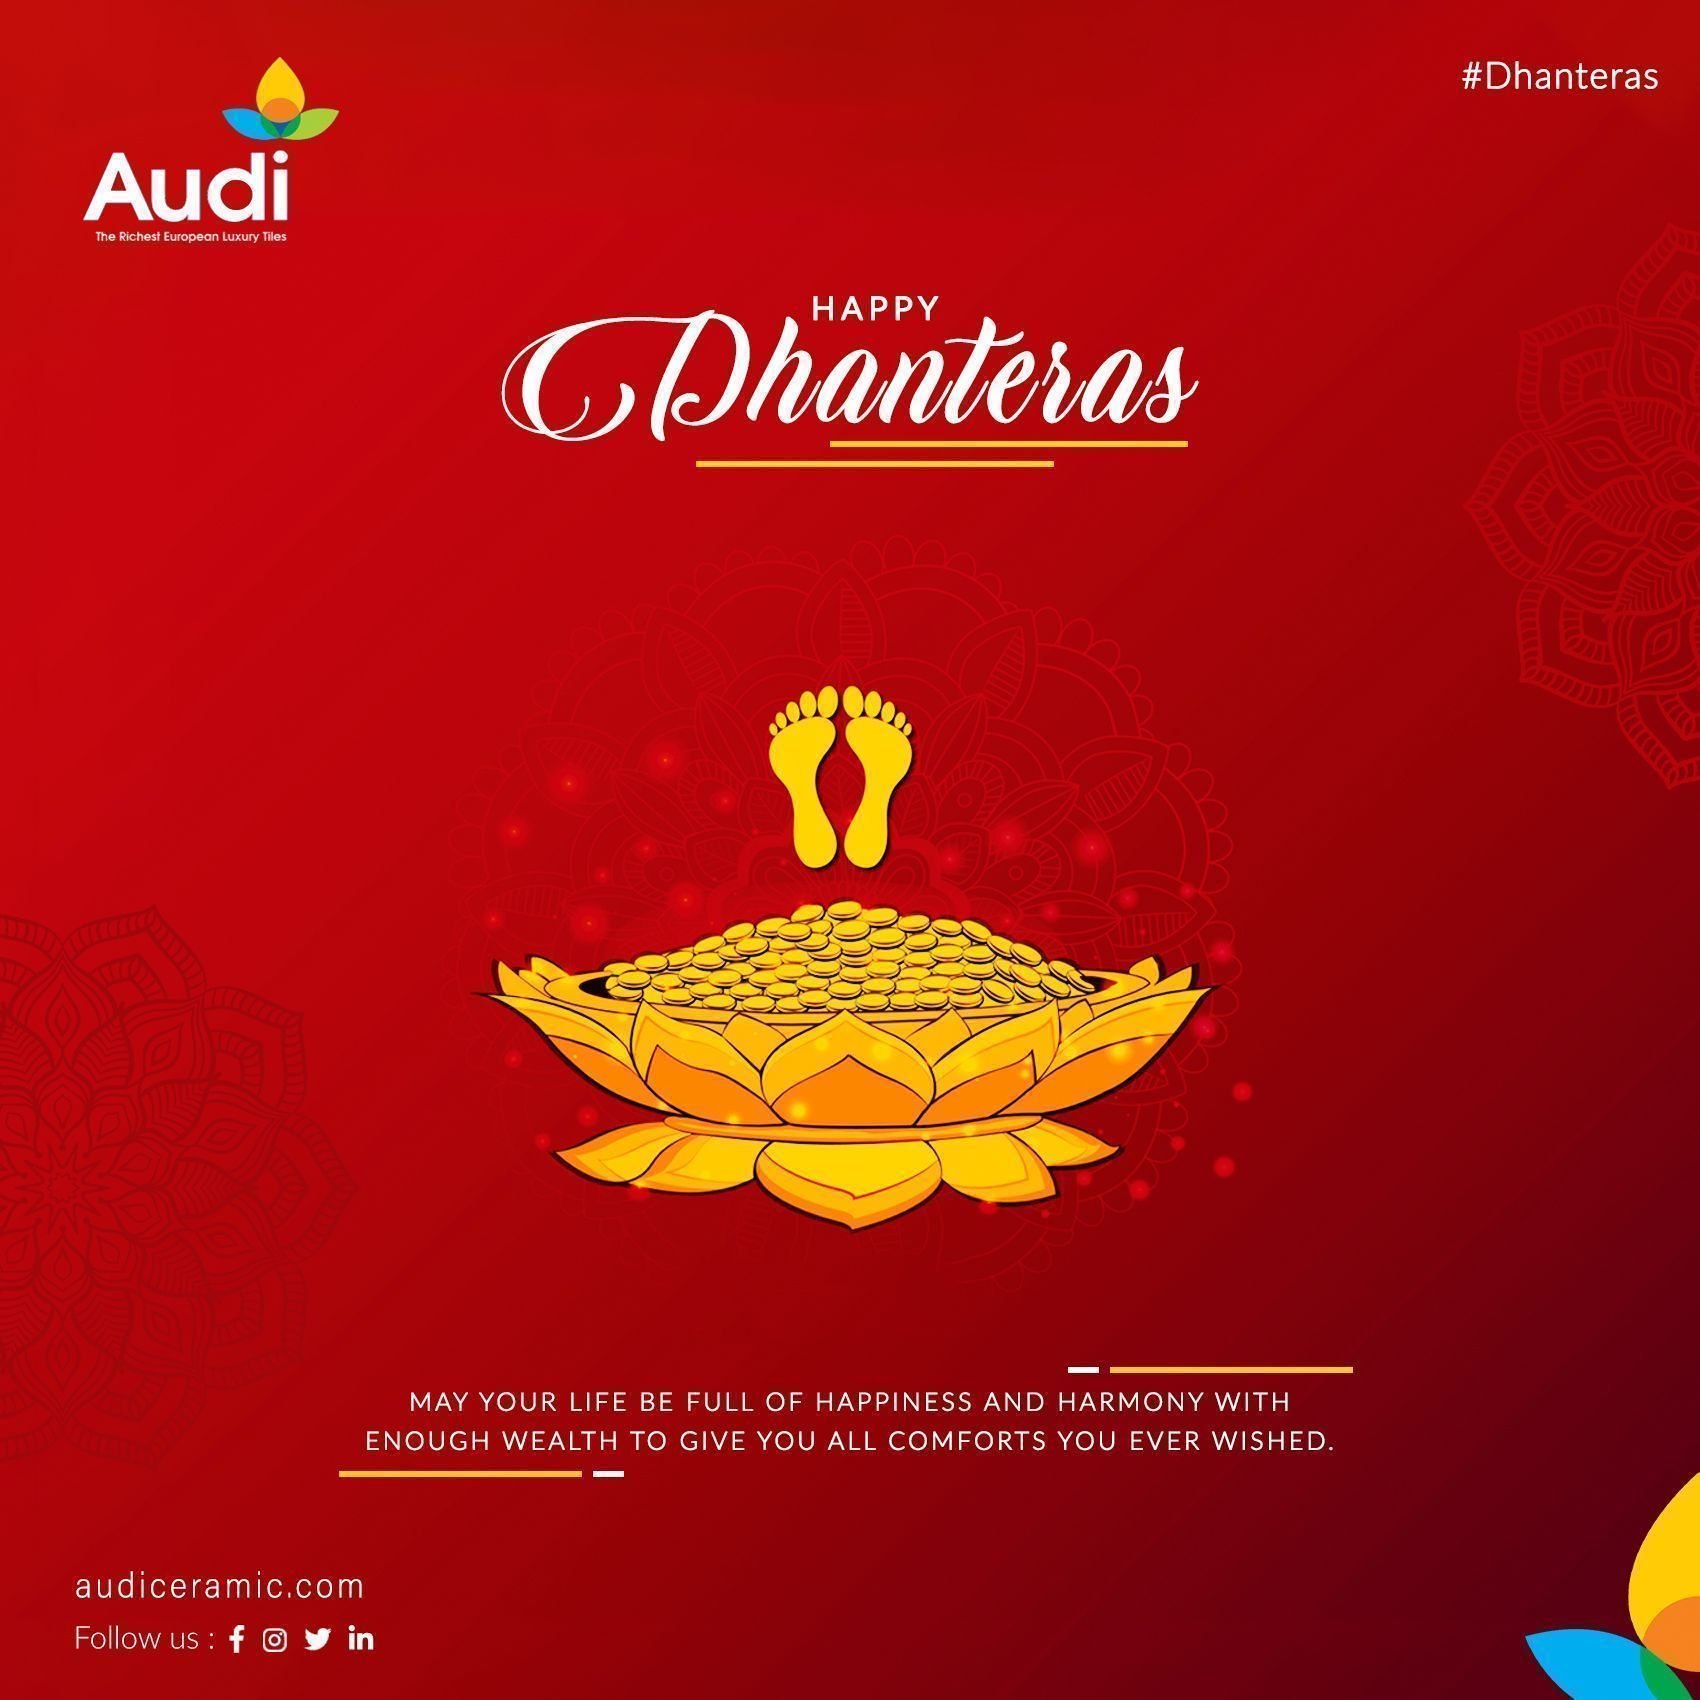 Happy Dhanteras.  May your life be full of happiness and harmony with enough wealth to give you all comforts you ever wished. #dhanteras #happydhanteras #wishing #festival #blesses #audiceramic #homedecor #ceramictiles #walltiles #brand #interior #besttiles #morbi #Exporter #India #tiles #ceramic #InteriorDecor #ceramicaindia #worthtiles #AudiCeramicllp #Tile #Architecture #happydhanteras Happy Dhanteras.  May your life be full of happiness and harmony with enough wealth to give you all comfor #happydhanteras